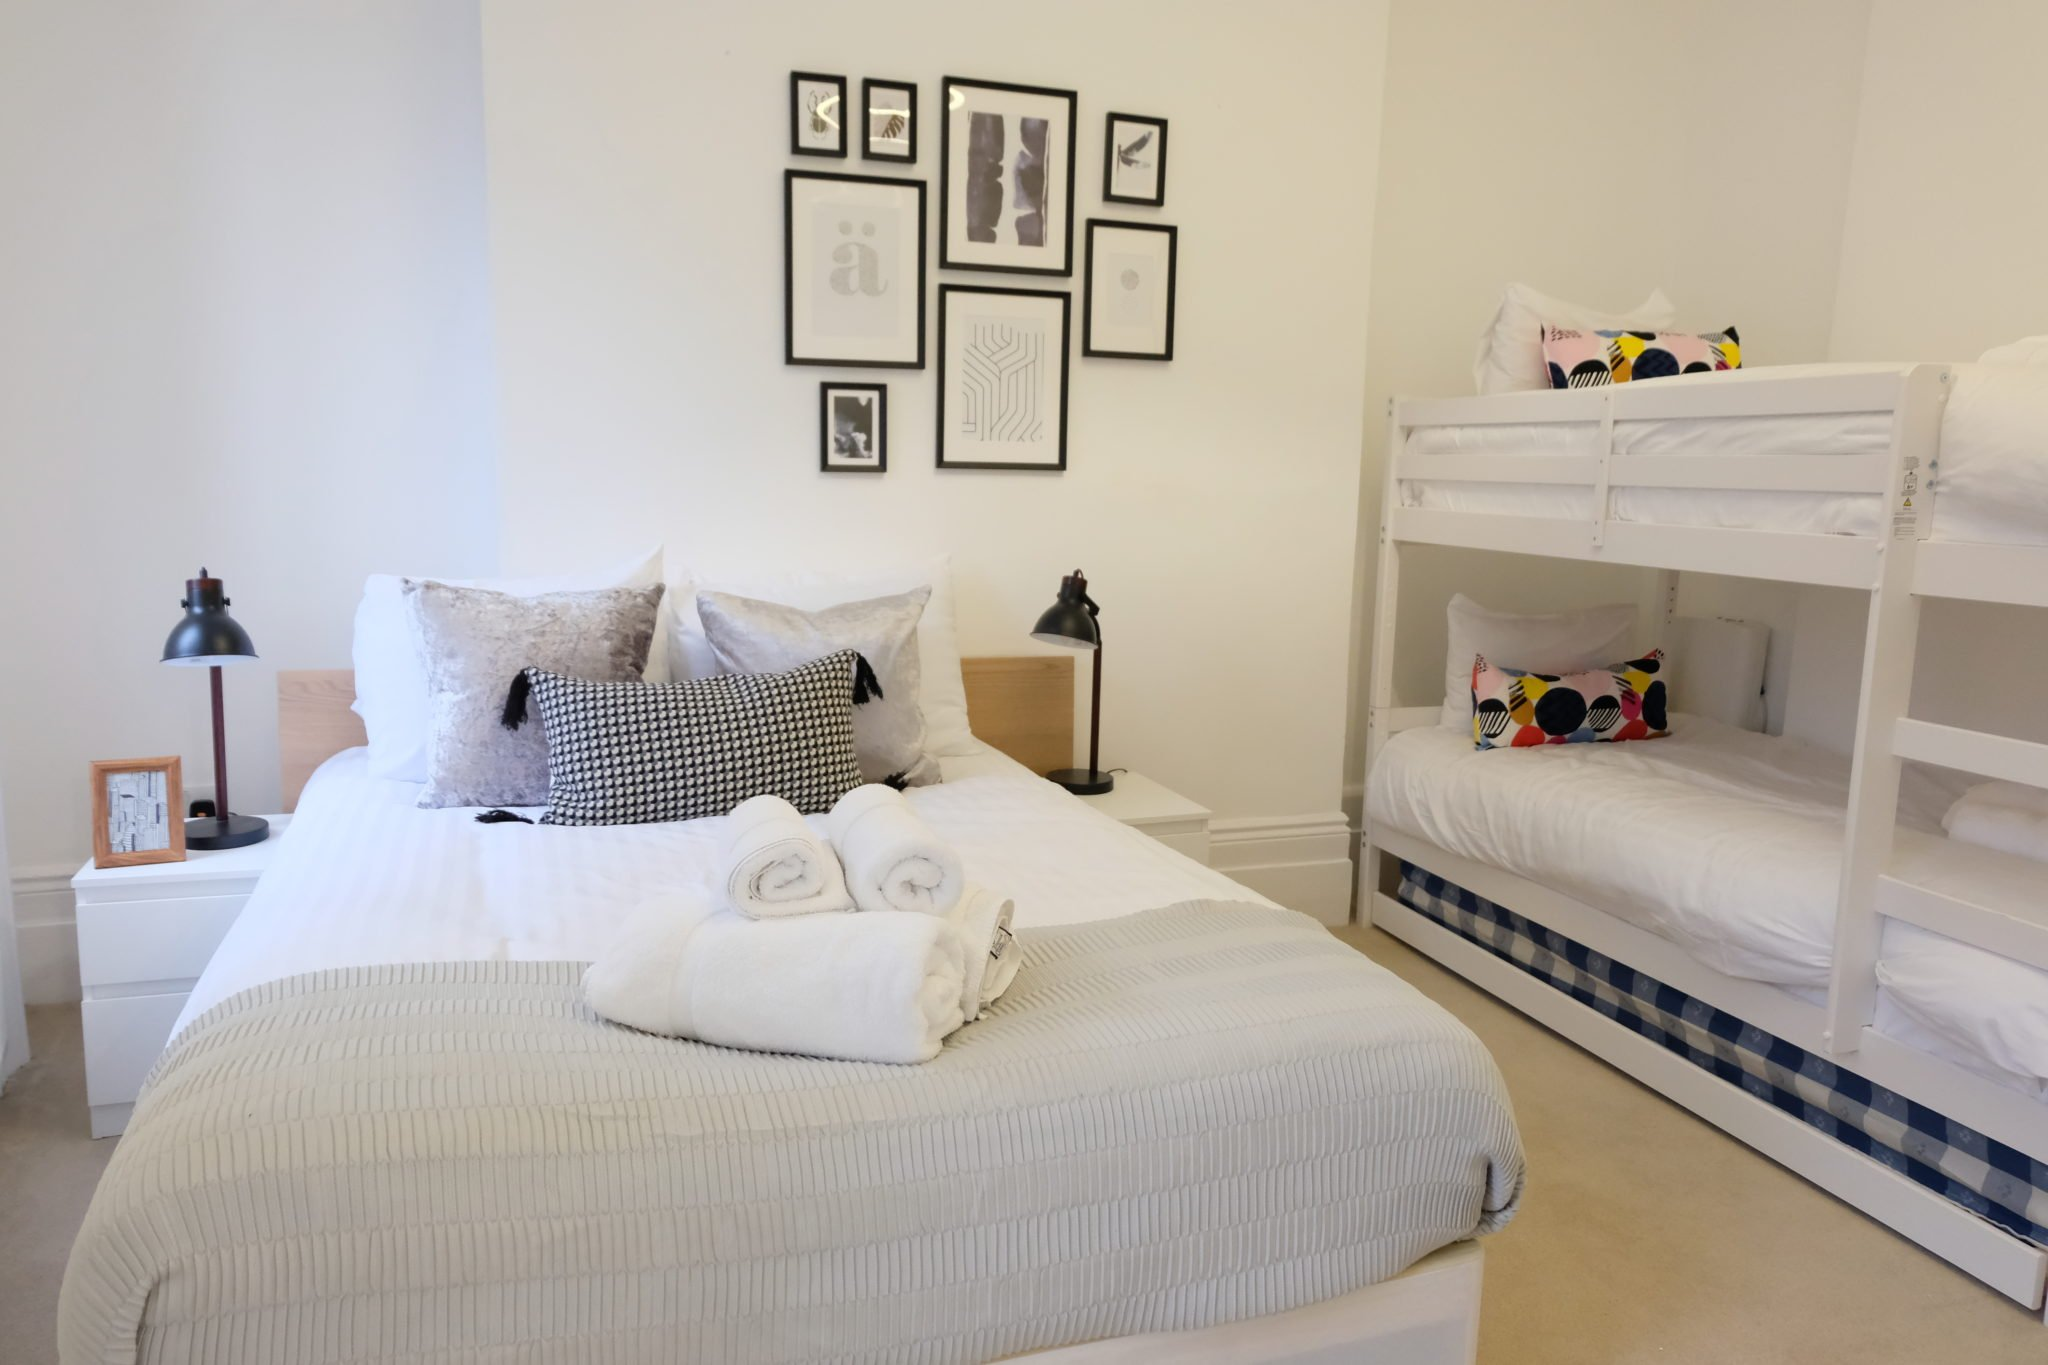 Luxury Townhouses central London Oxford Street Mansions Short Let Serviced Accommodation Tottenham Court Road Urban Stay 17 (2)